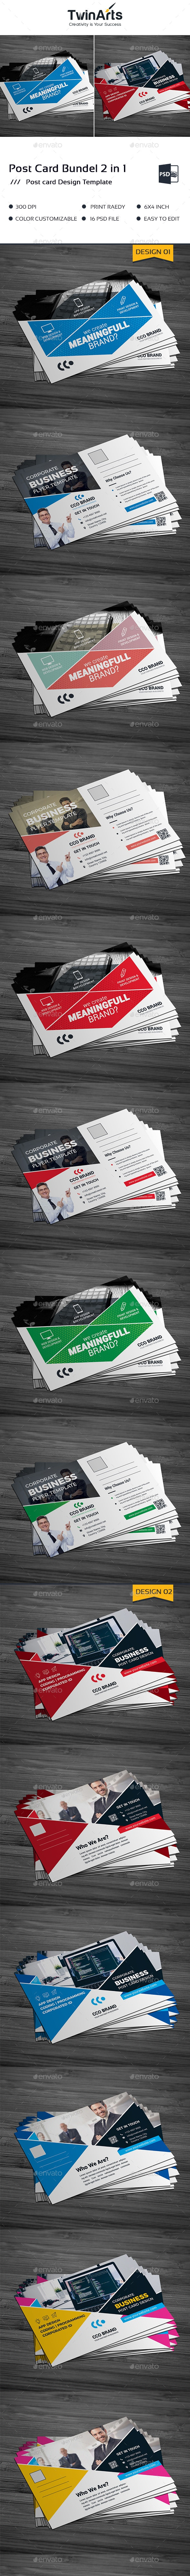 Post Card Bundle_2 in 1 - Cards & Invites Print Templates